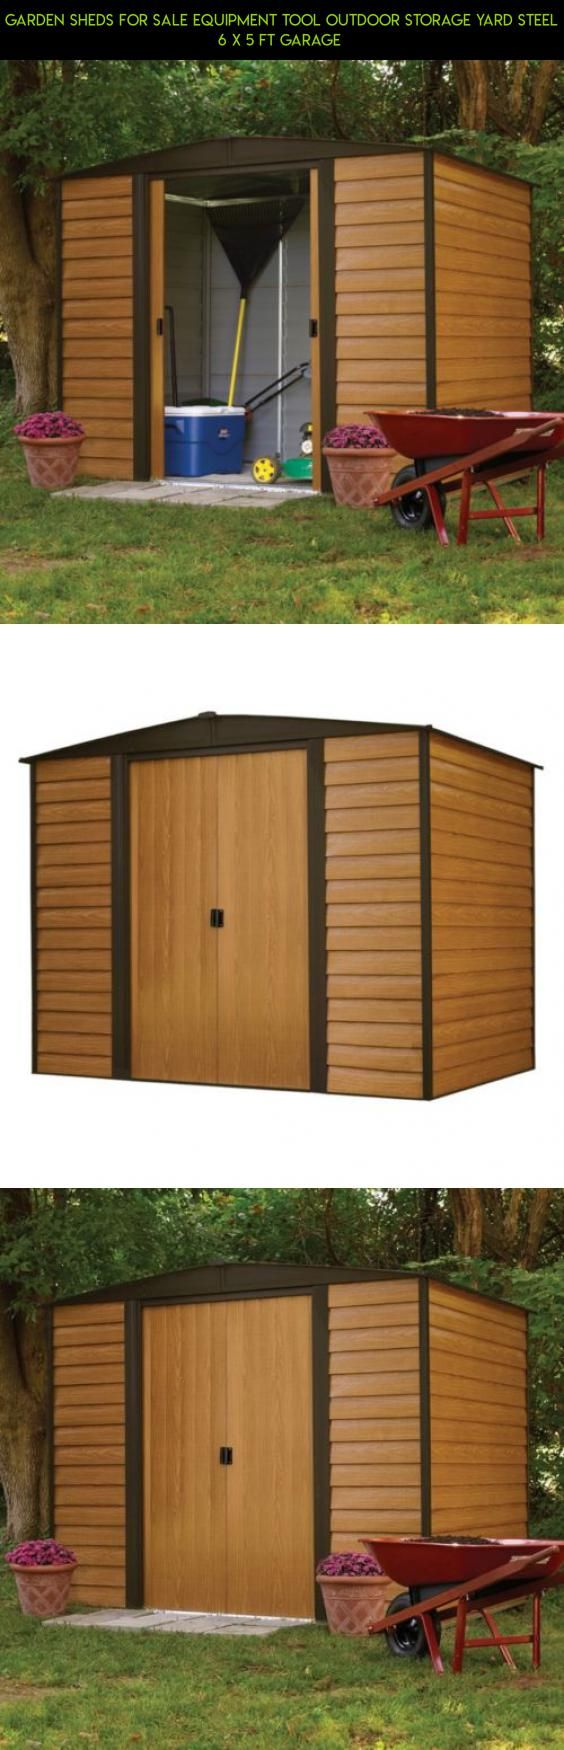 garden sheds for sale equipment tool outdoor storage yard steel 6 x 5 ft garage